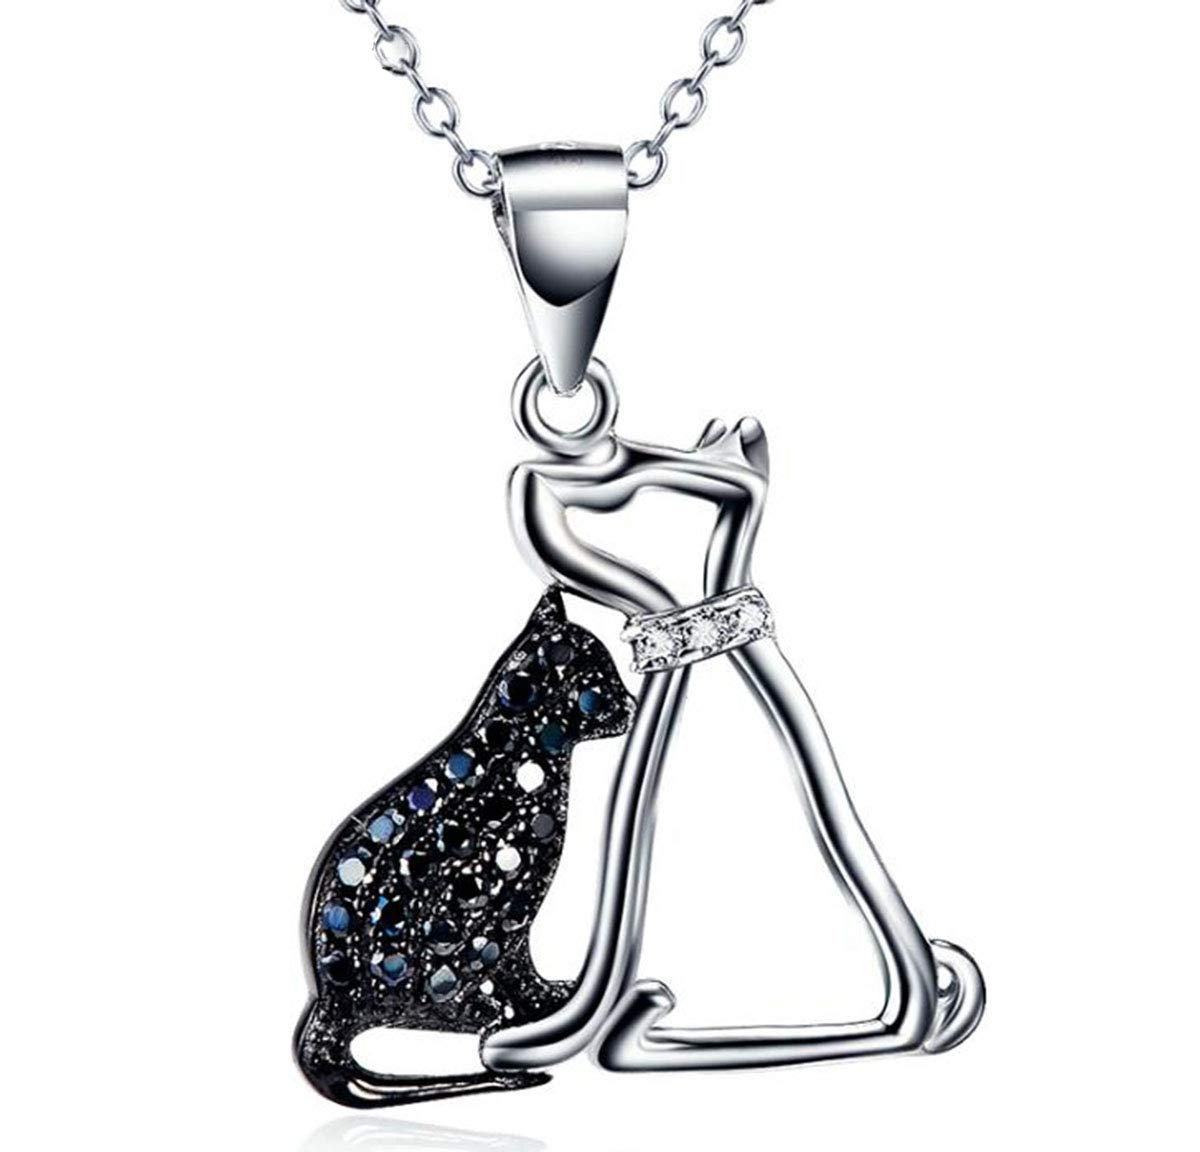 Onlyfo 925 Silver Diamond Accent Filigree Pet Cat and Dog Pendant Necklace with Jewelry Box,Dog Necklace for Women (Silver) by Onlyfo